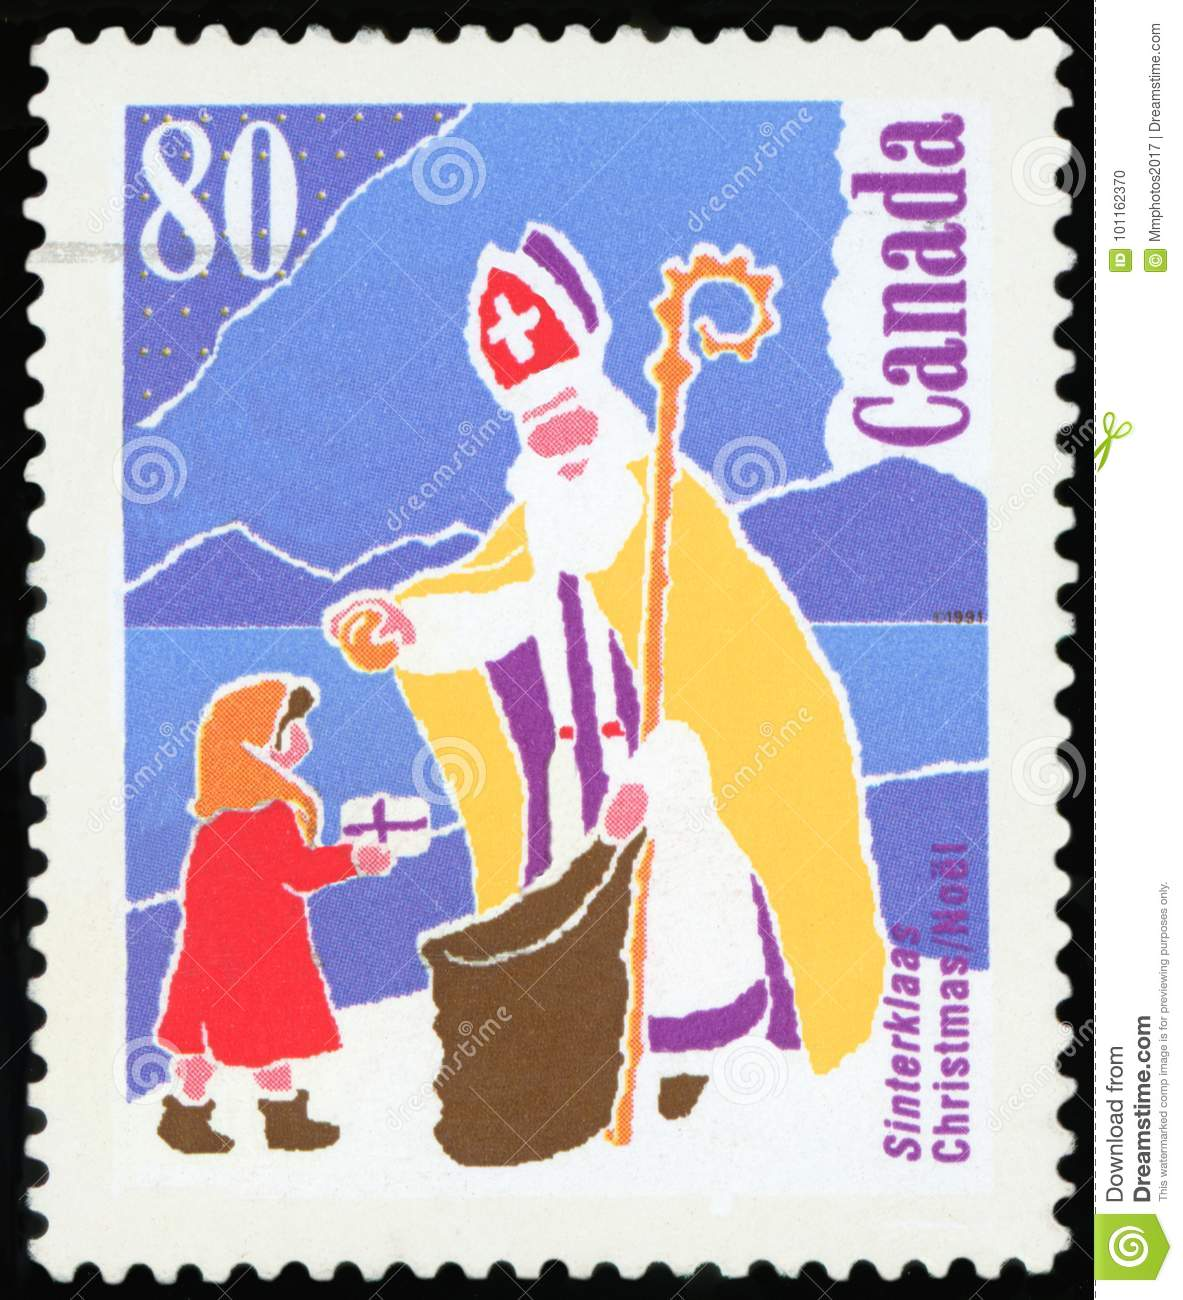 Postage Stamp Canada Editorial Image Image Of Gifts 101162370